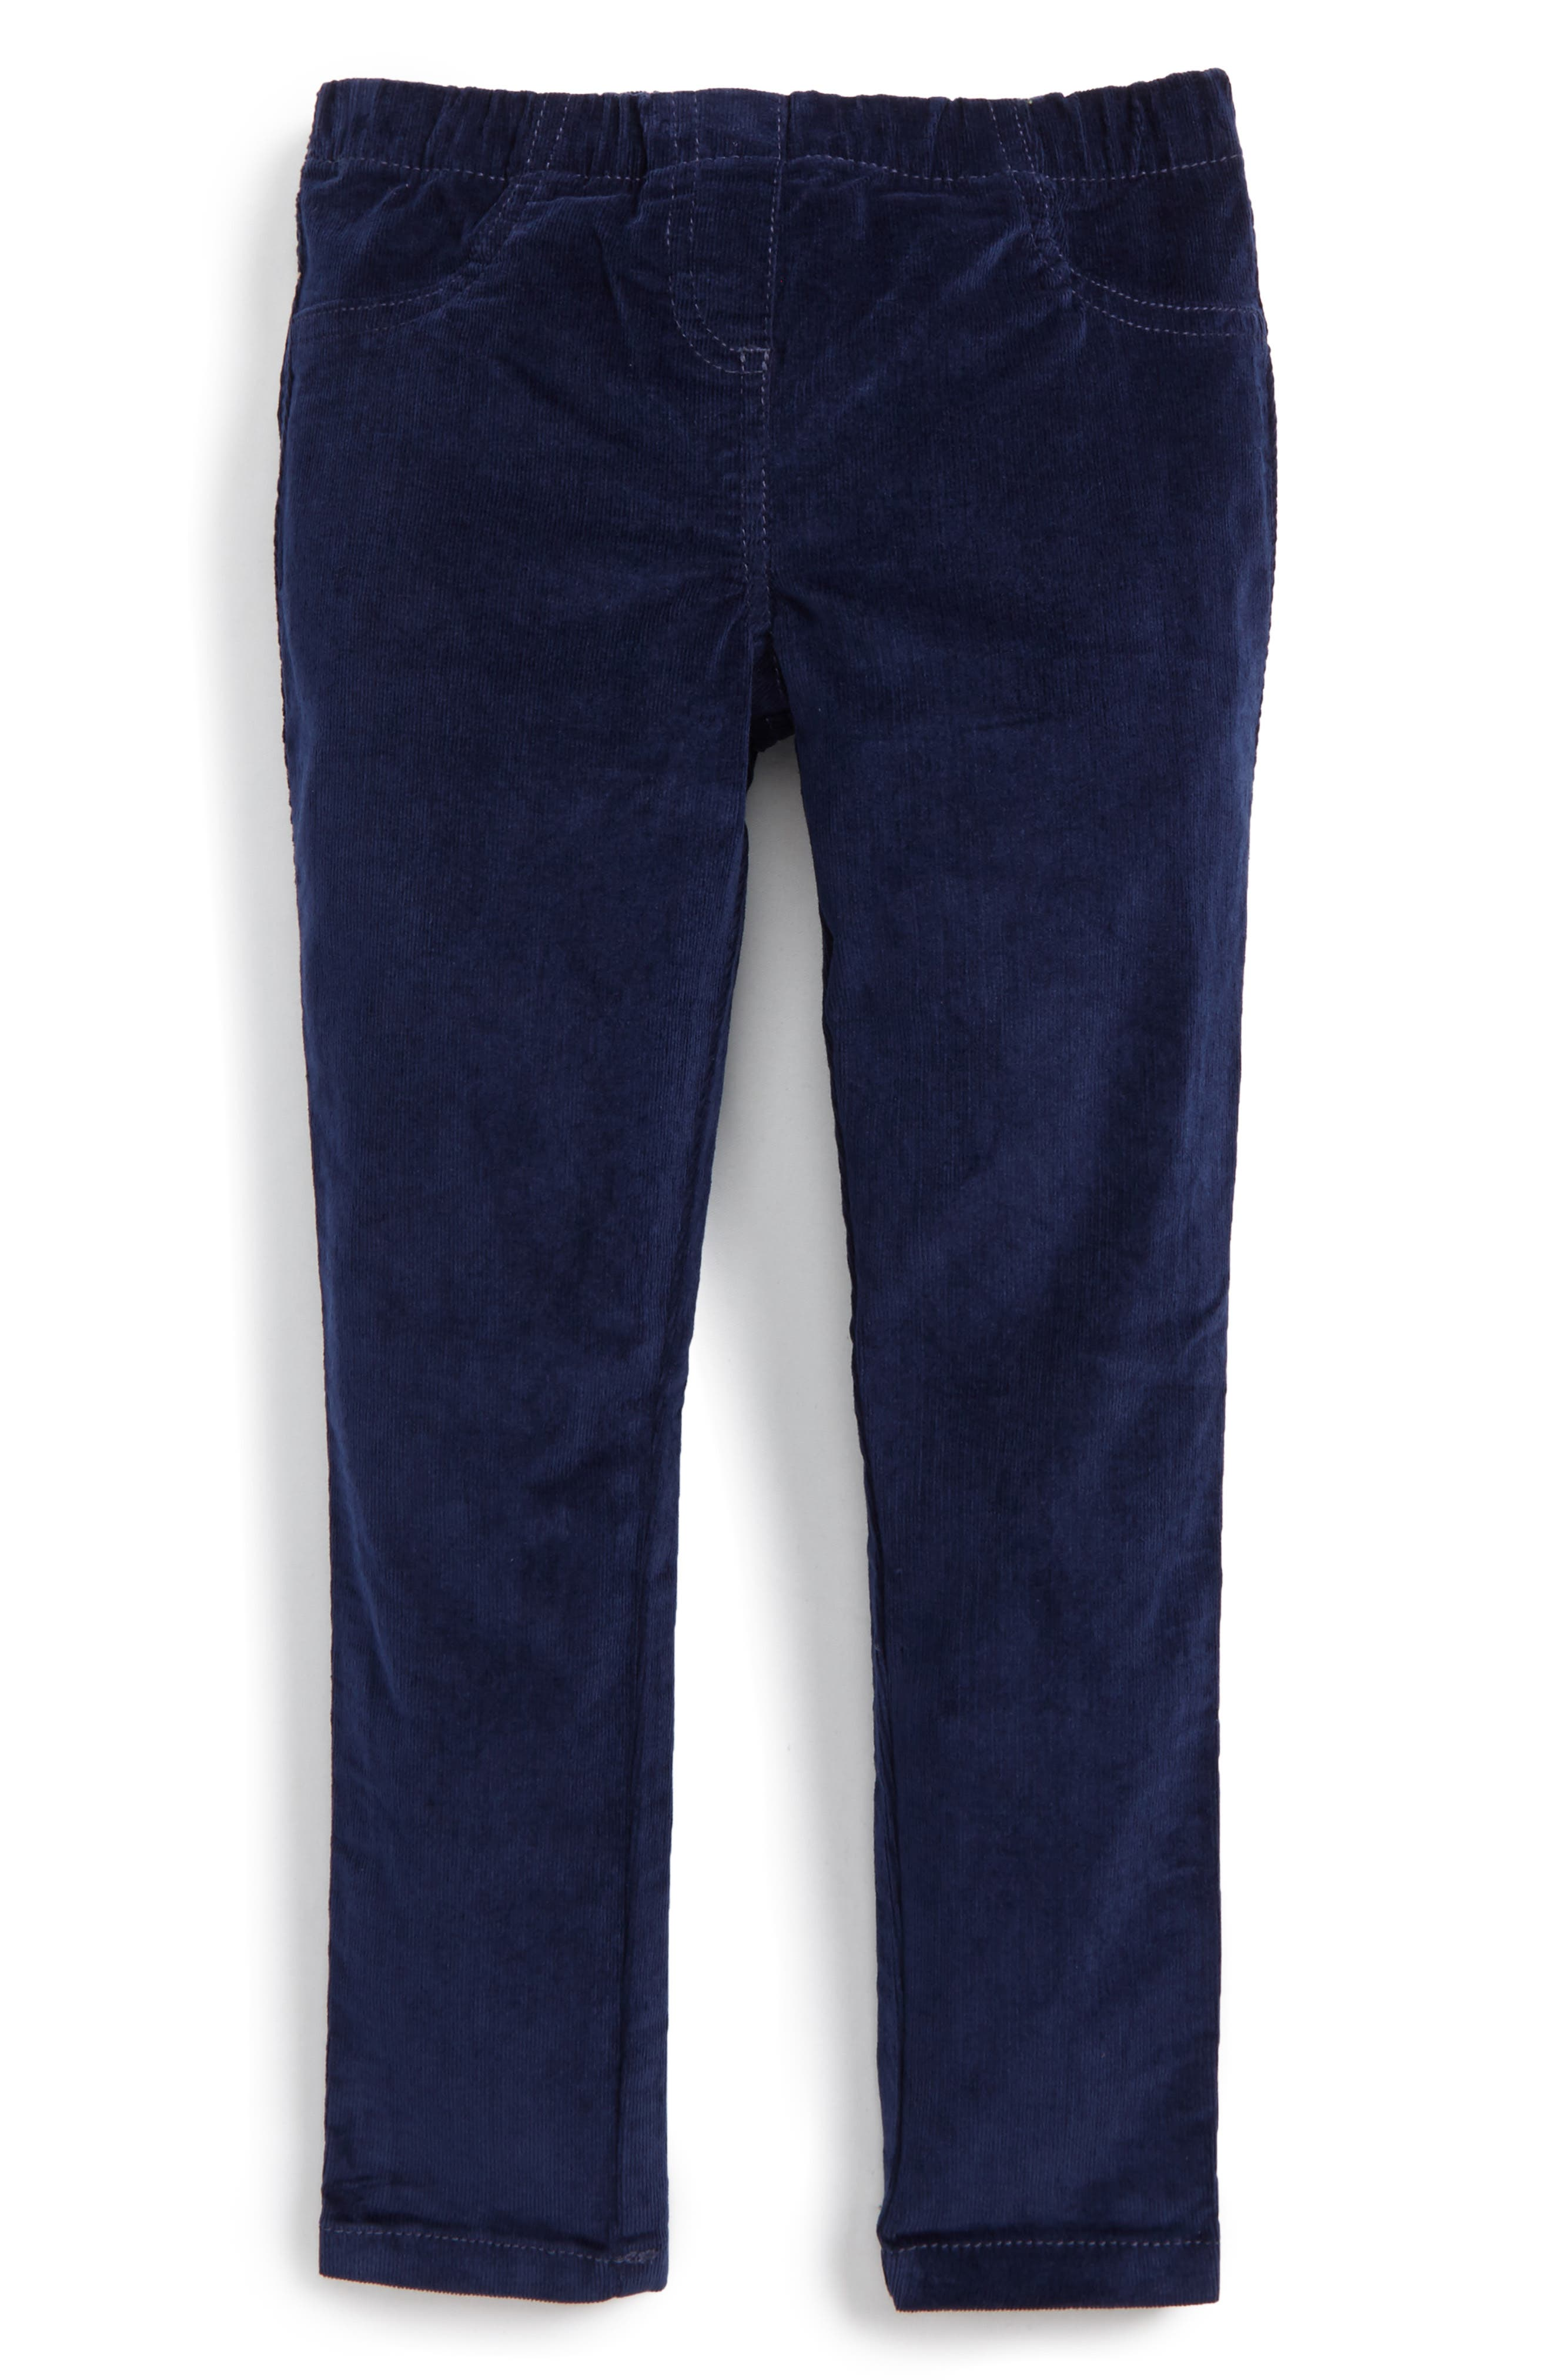 Corduroy Leggings,                             Main thumbnail 1, color,                             414